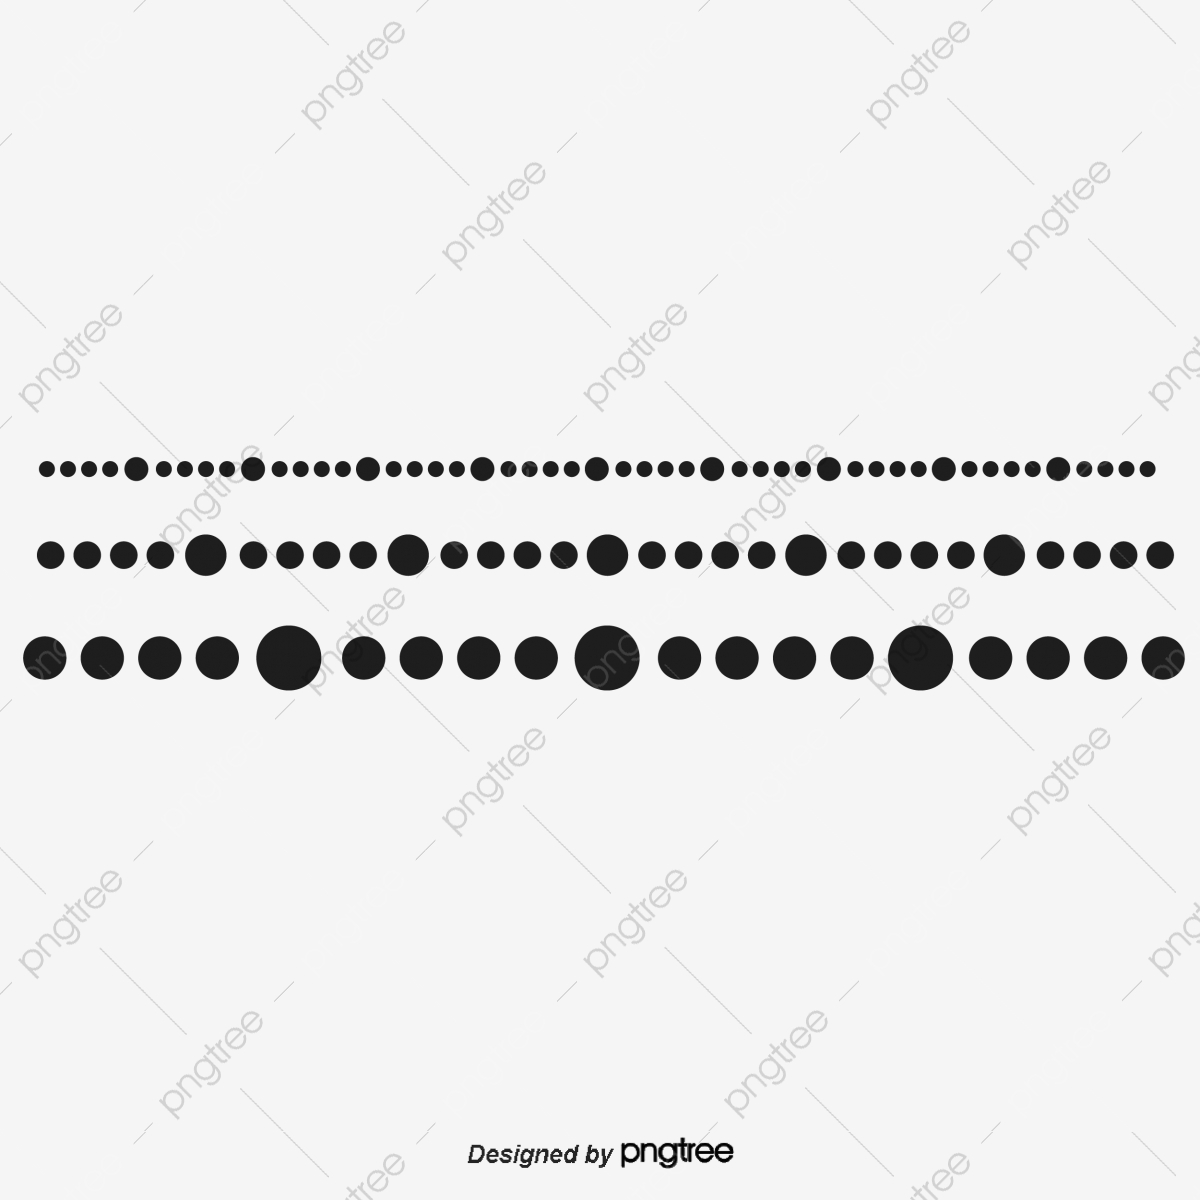 Black Dotted Dotted Dotted Line, Line Clipart, Dotted Line